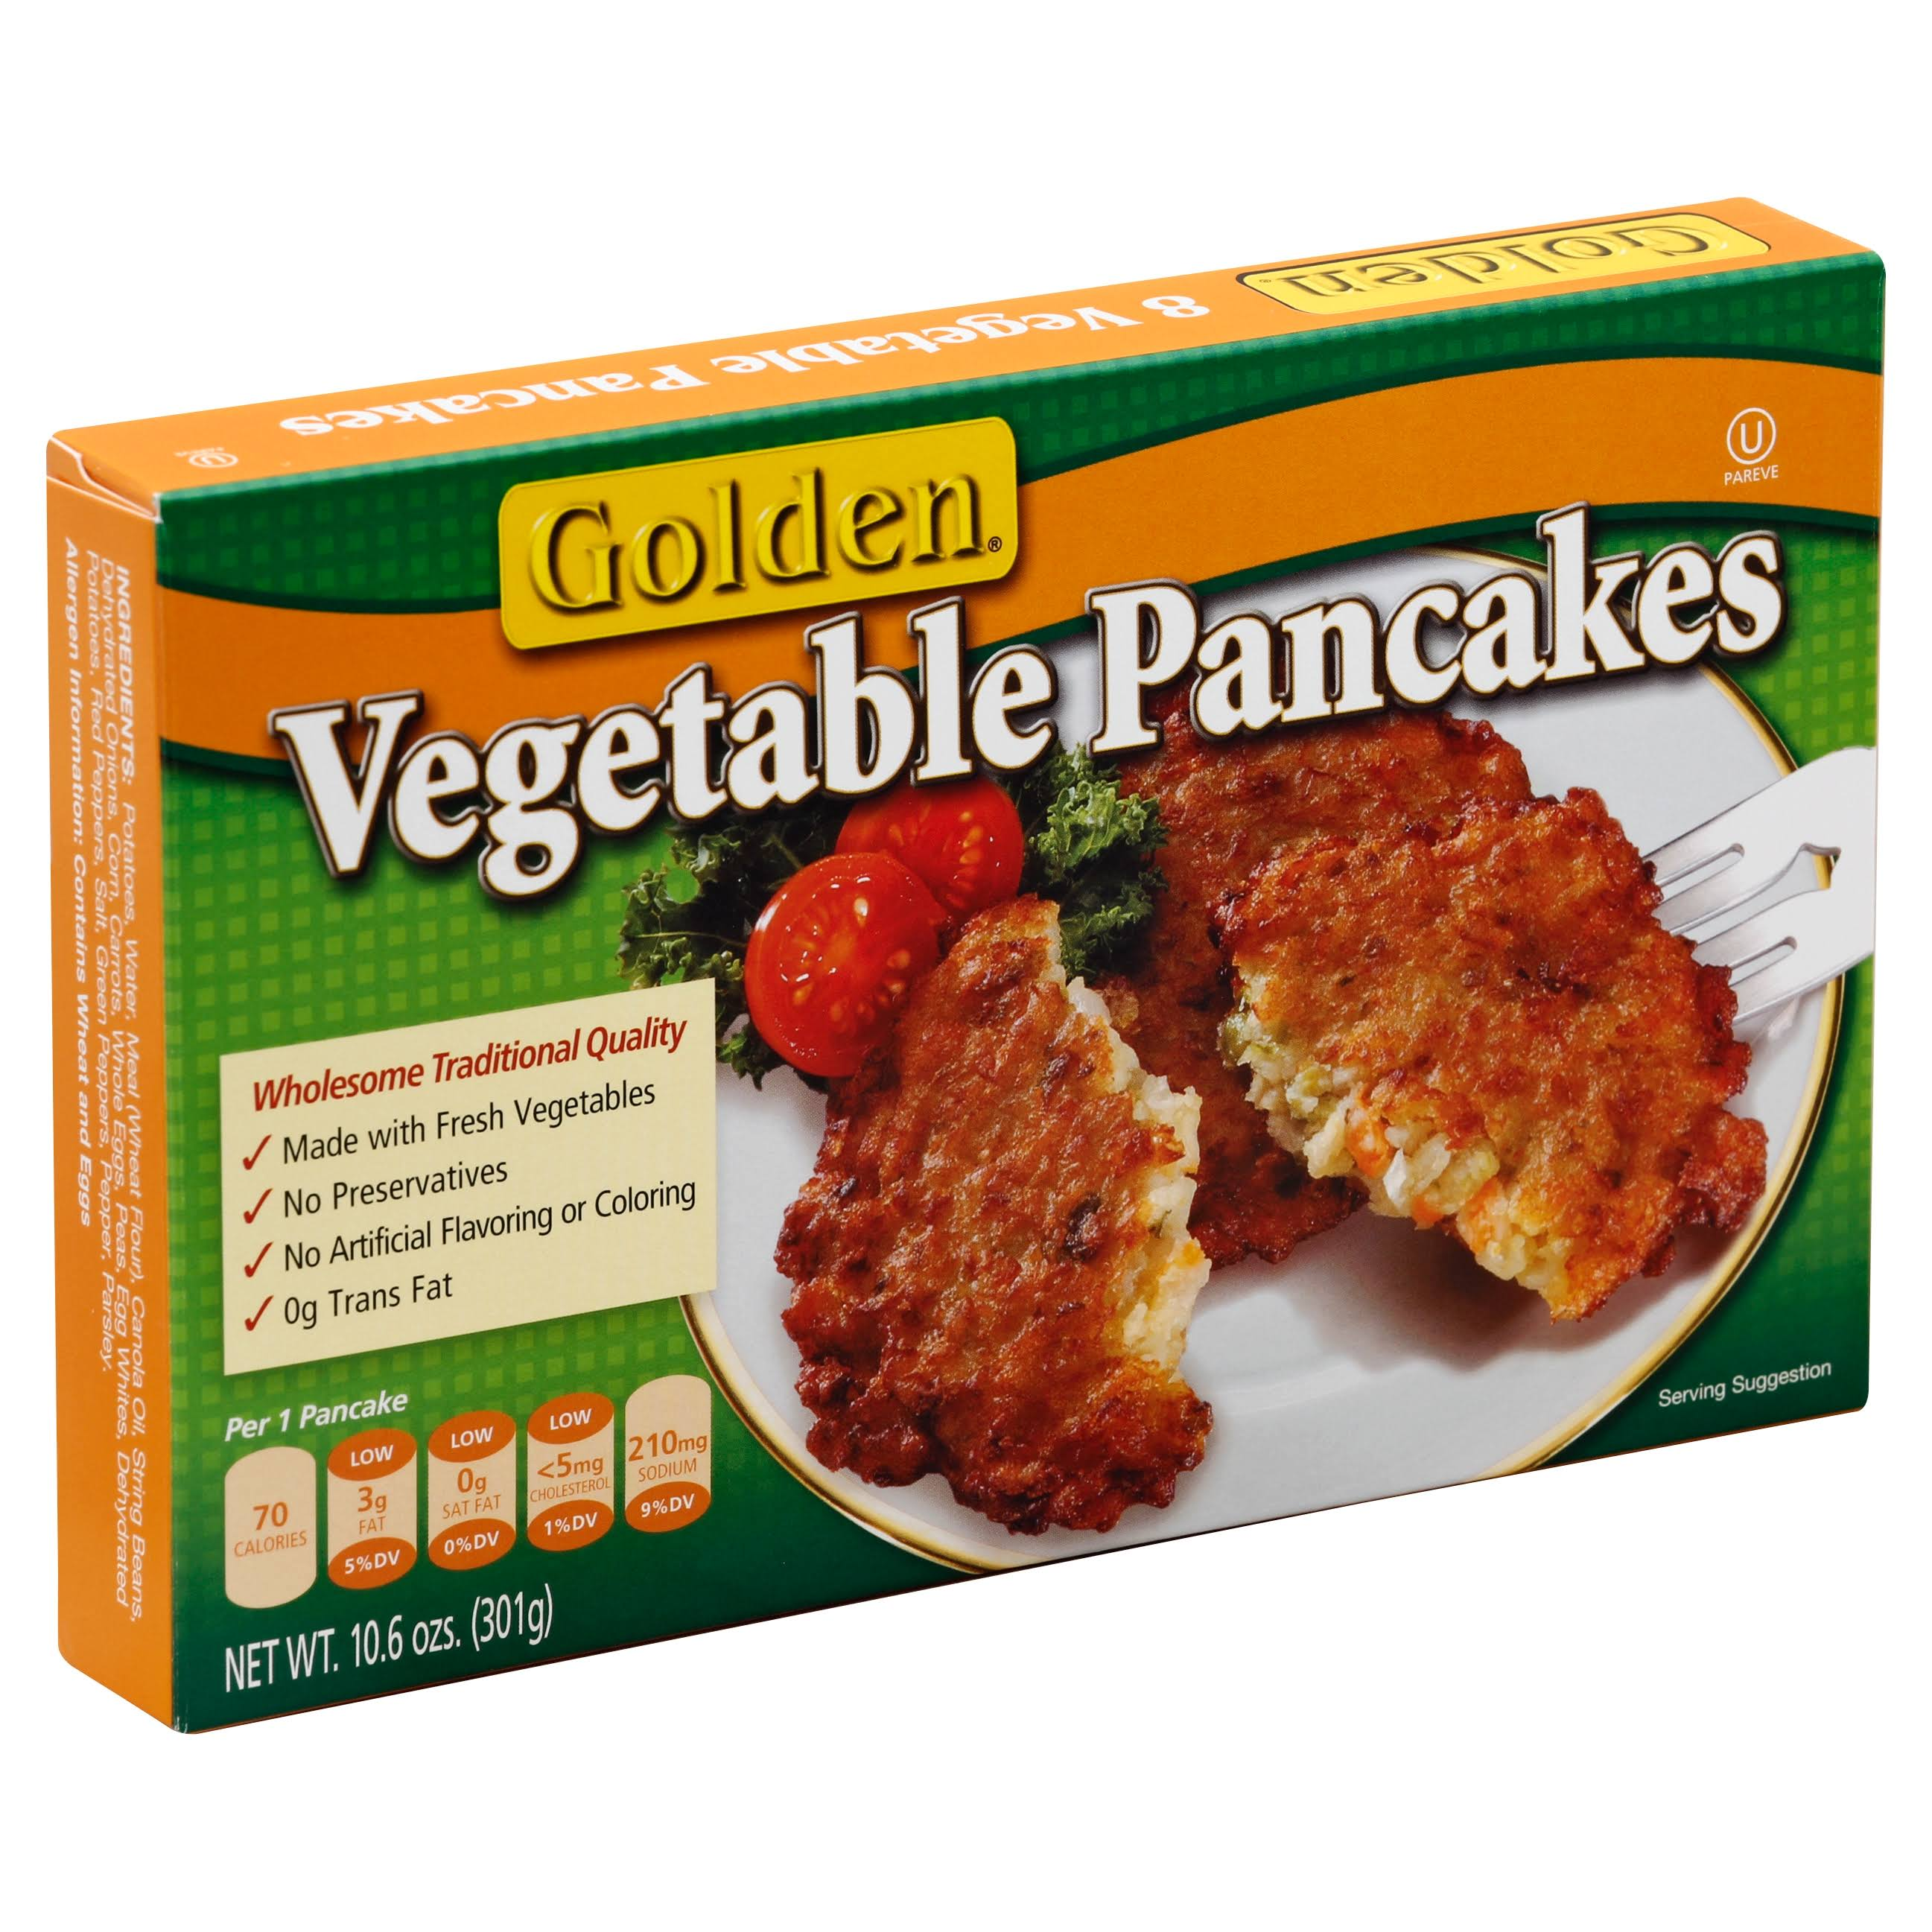 Golden Vegetable Pancakes - 8ct, 10.6oz